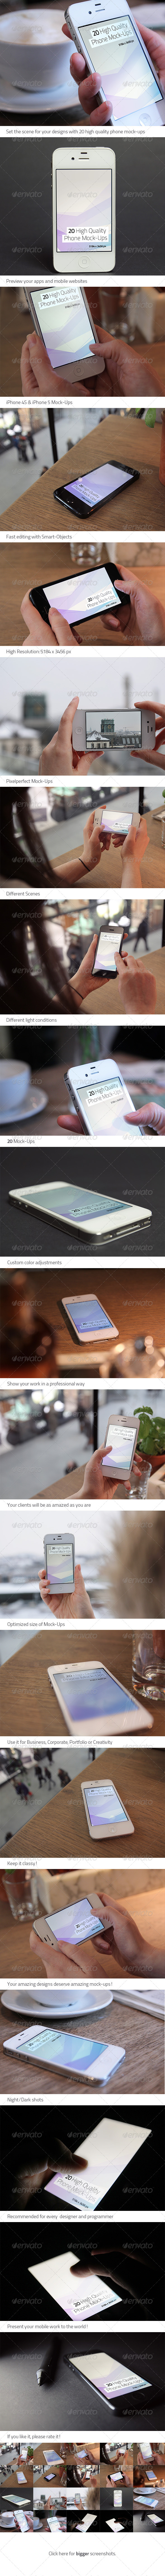 GraphicRiver 20 High Quality Phone Mock-Ups 4245823